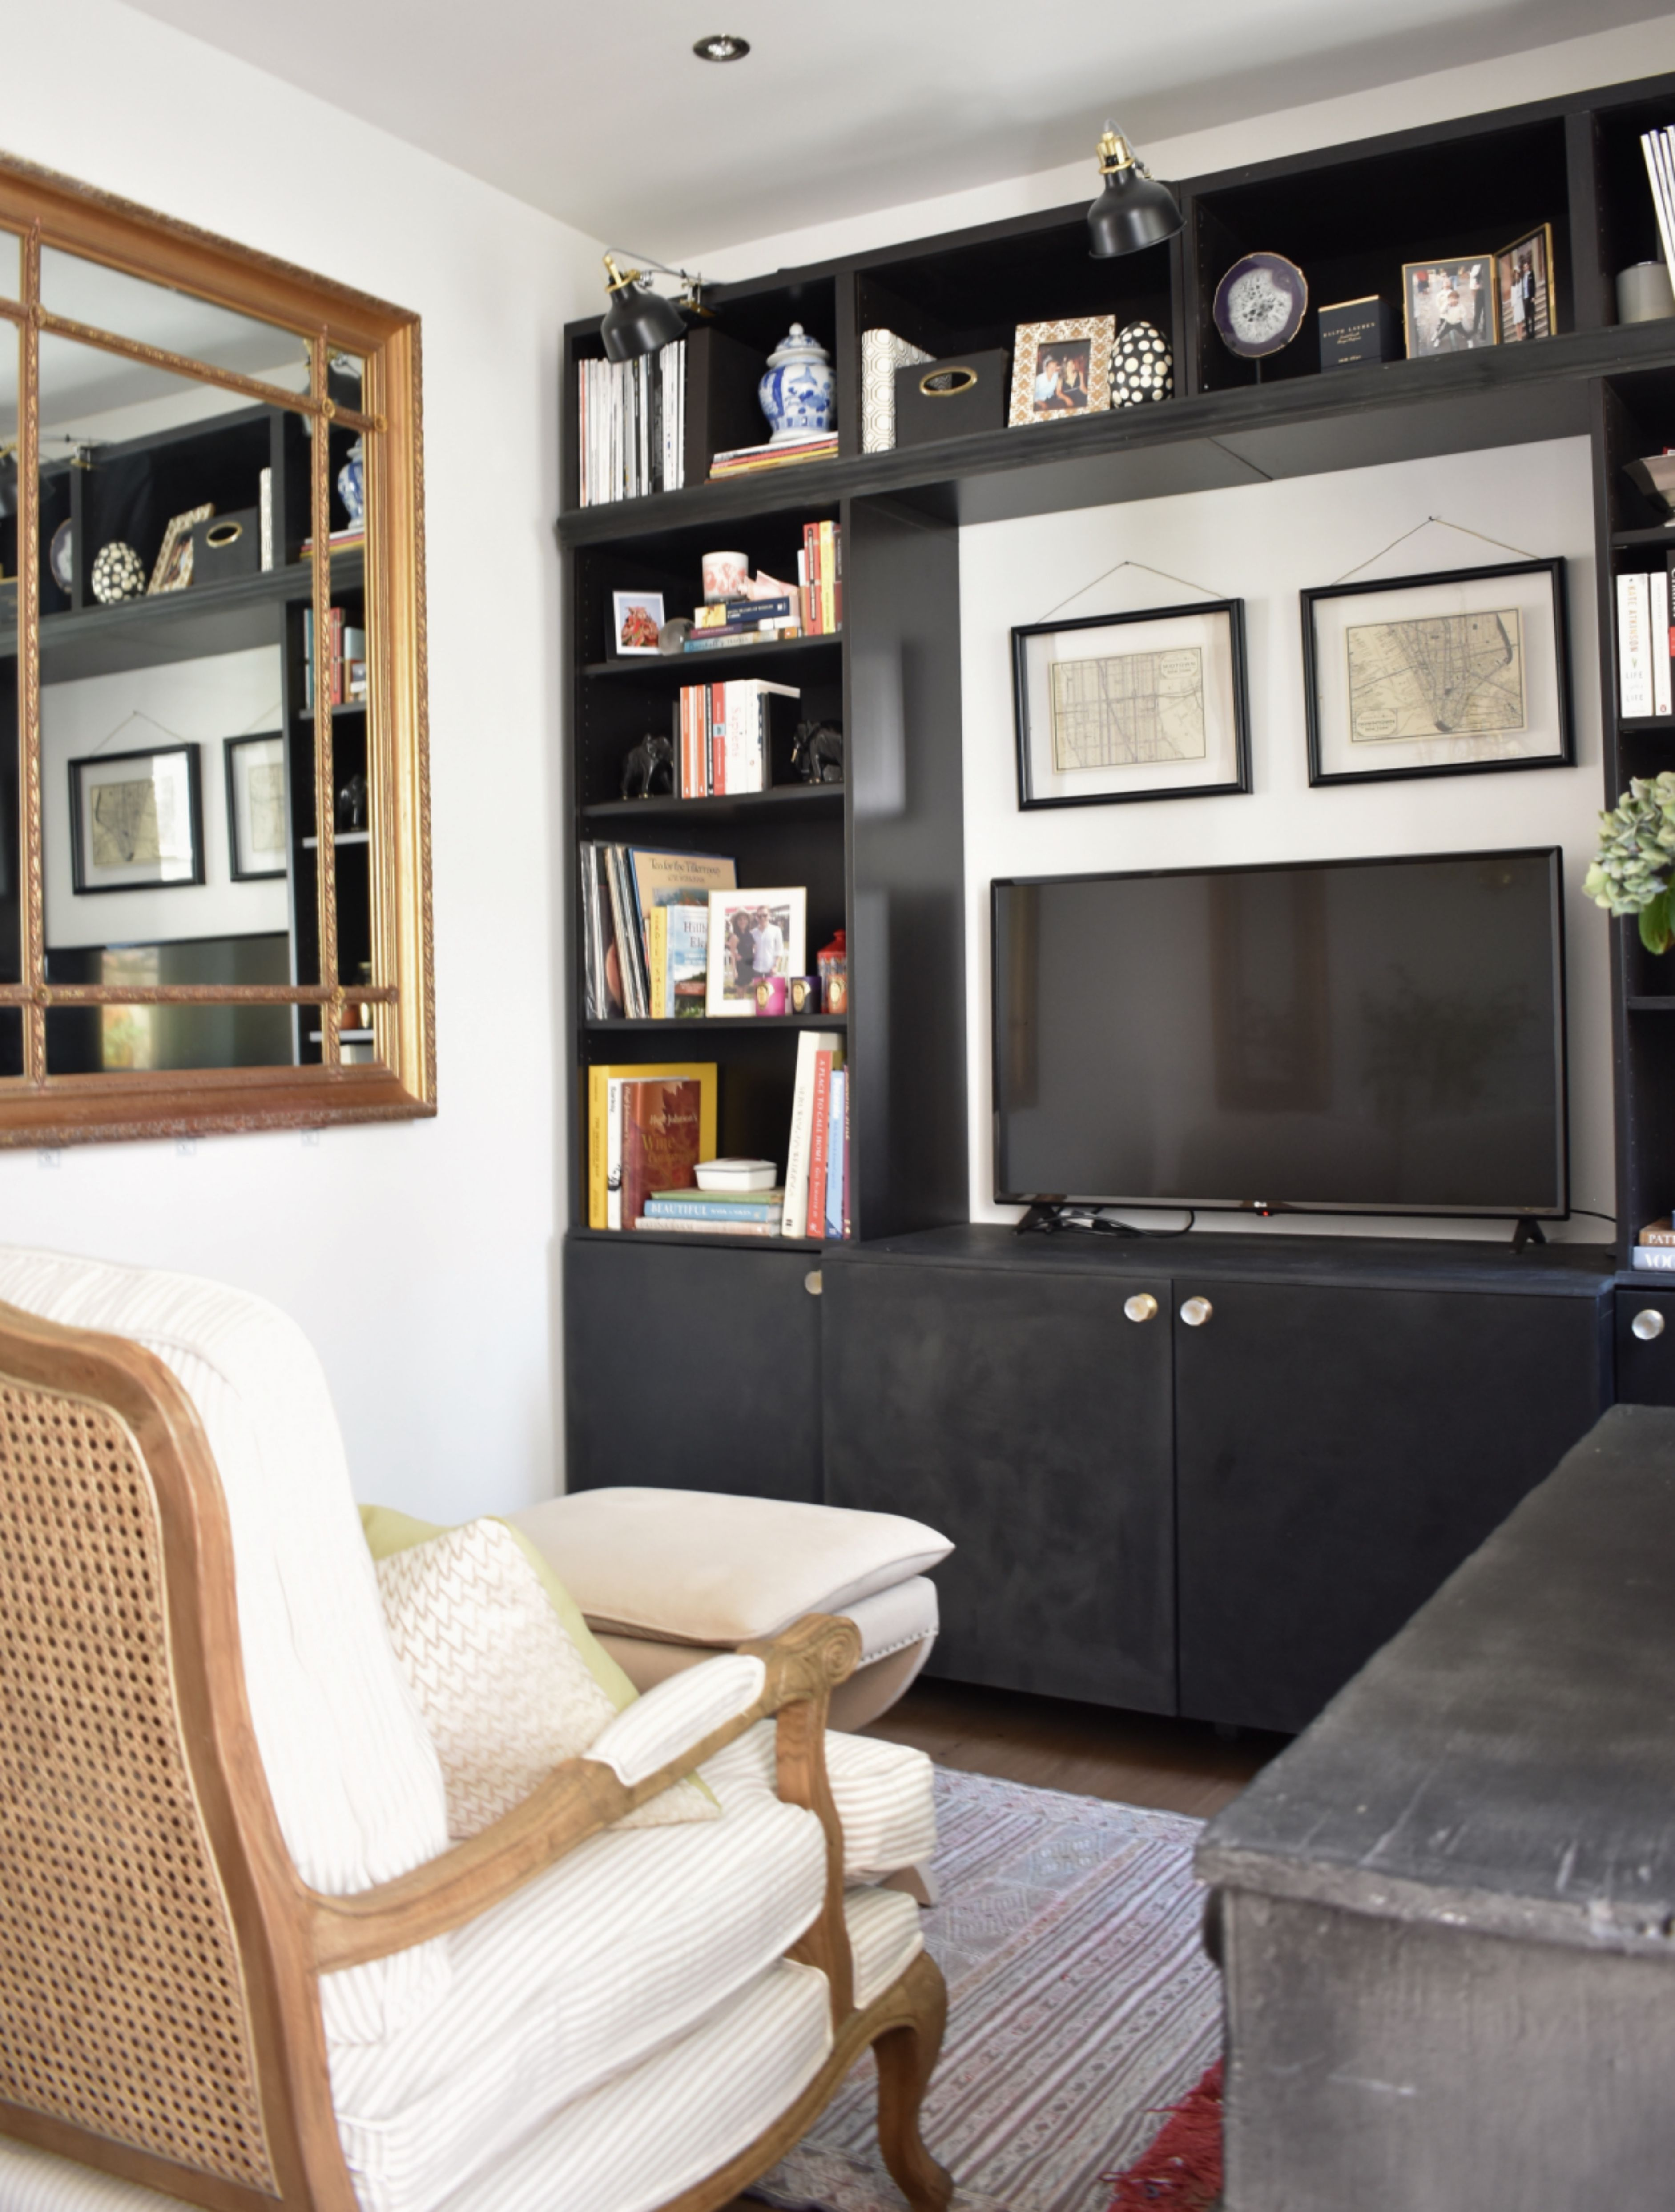 A 450 Square Foot London Flat Remodeled On A Budget Living Room